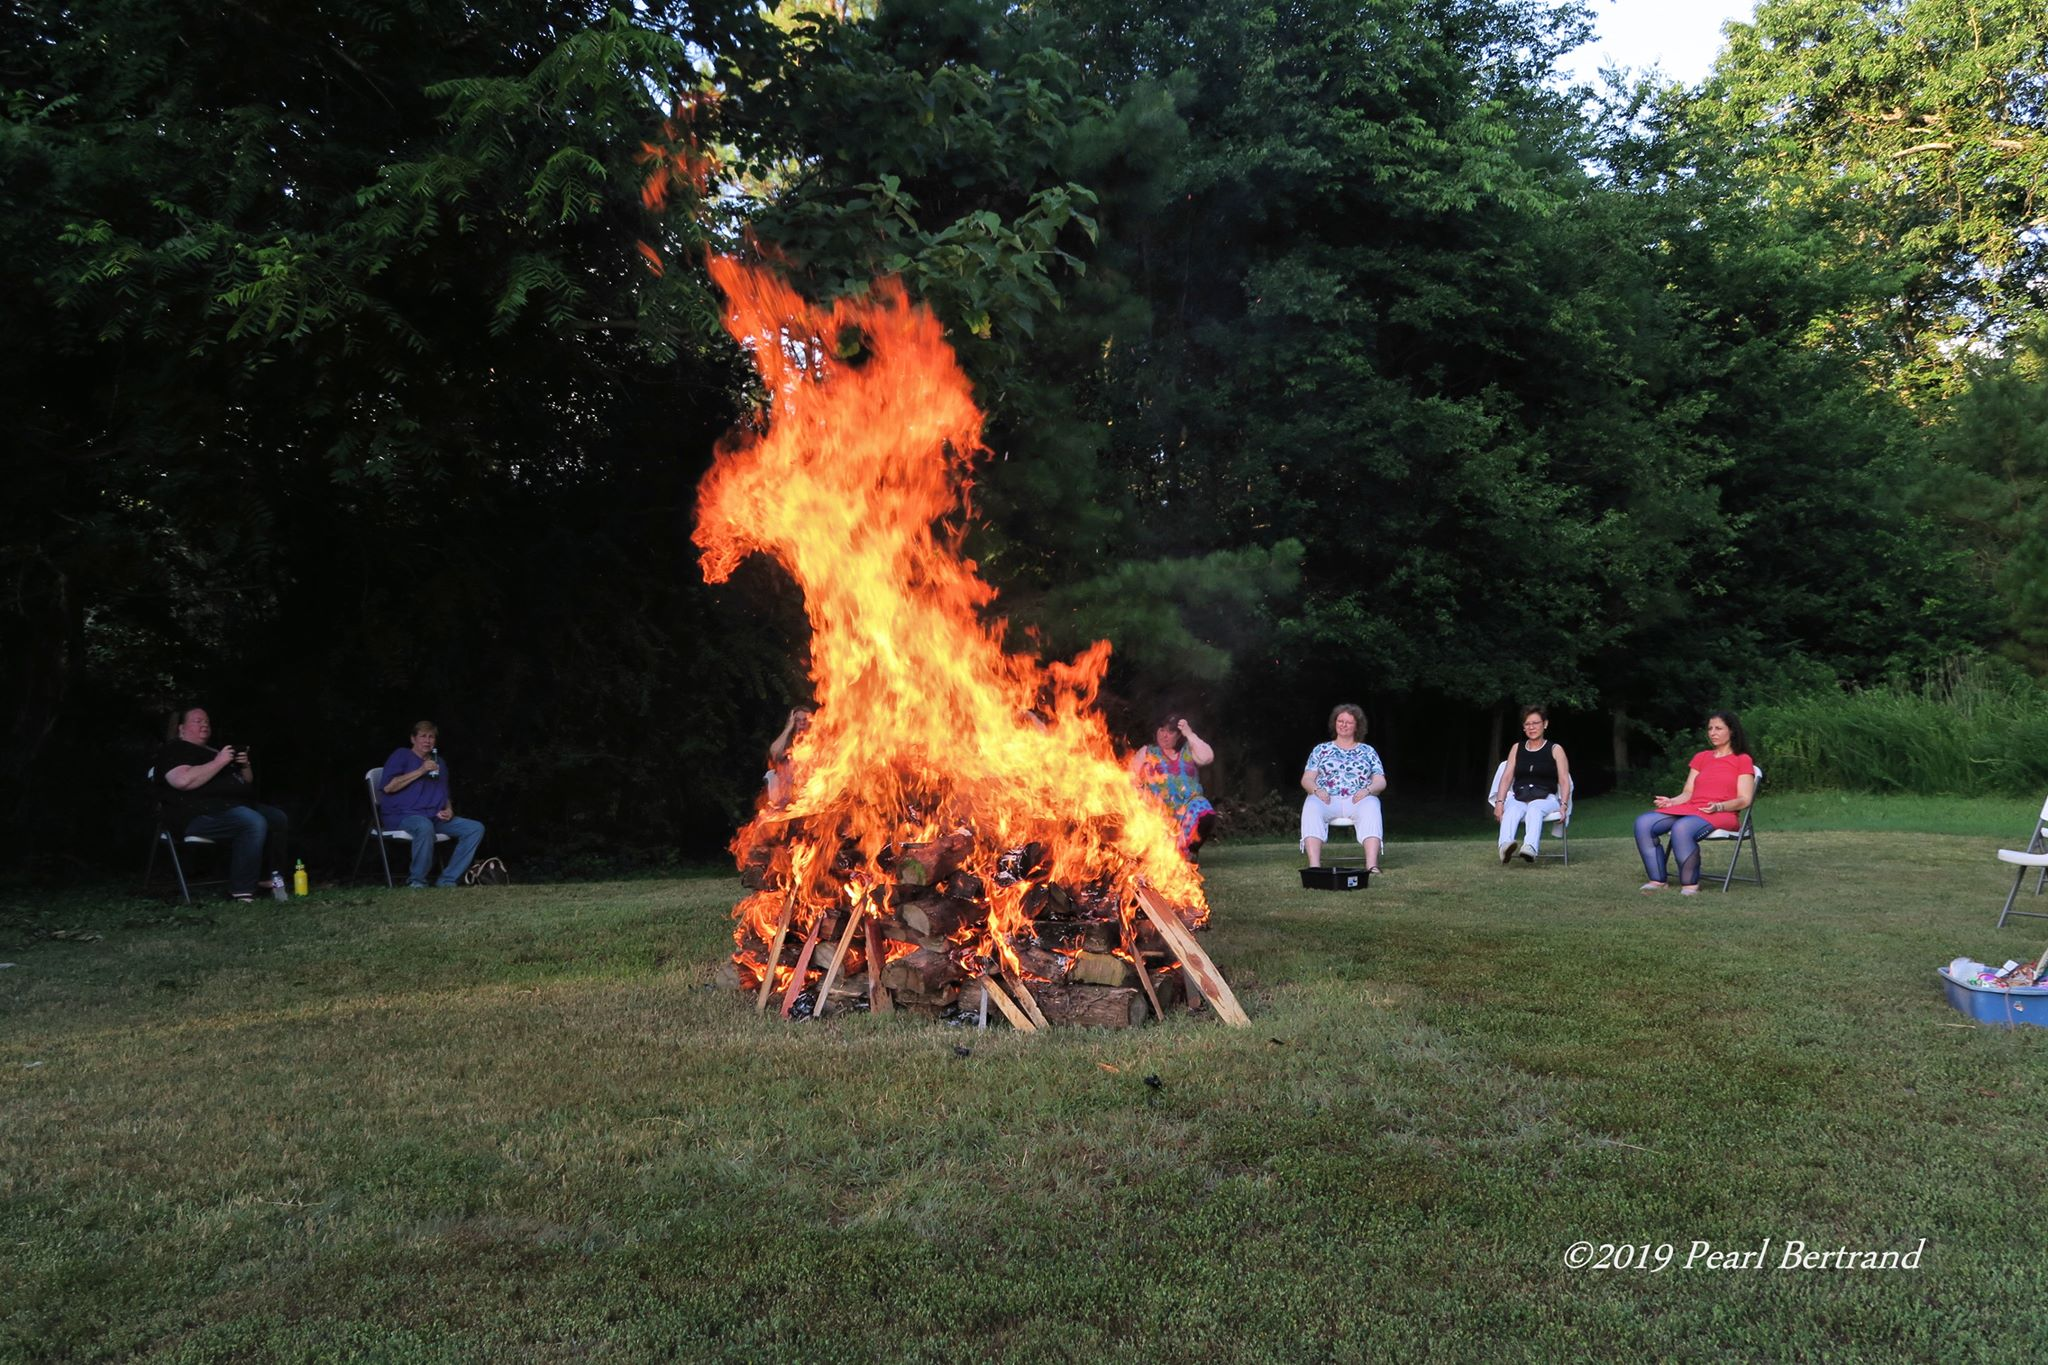 Image of a Fire Dragon by Pearl Bertrand from our firewalk July 13th, 2019